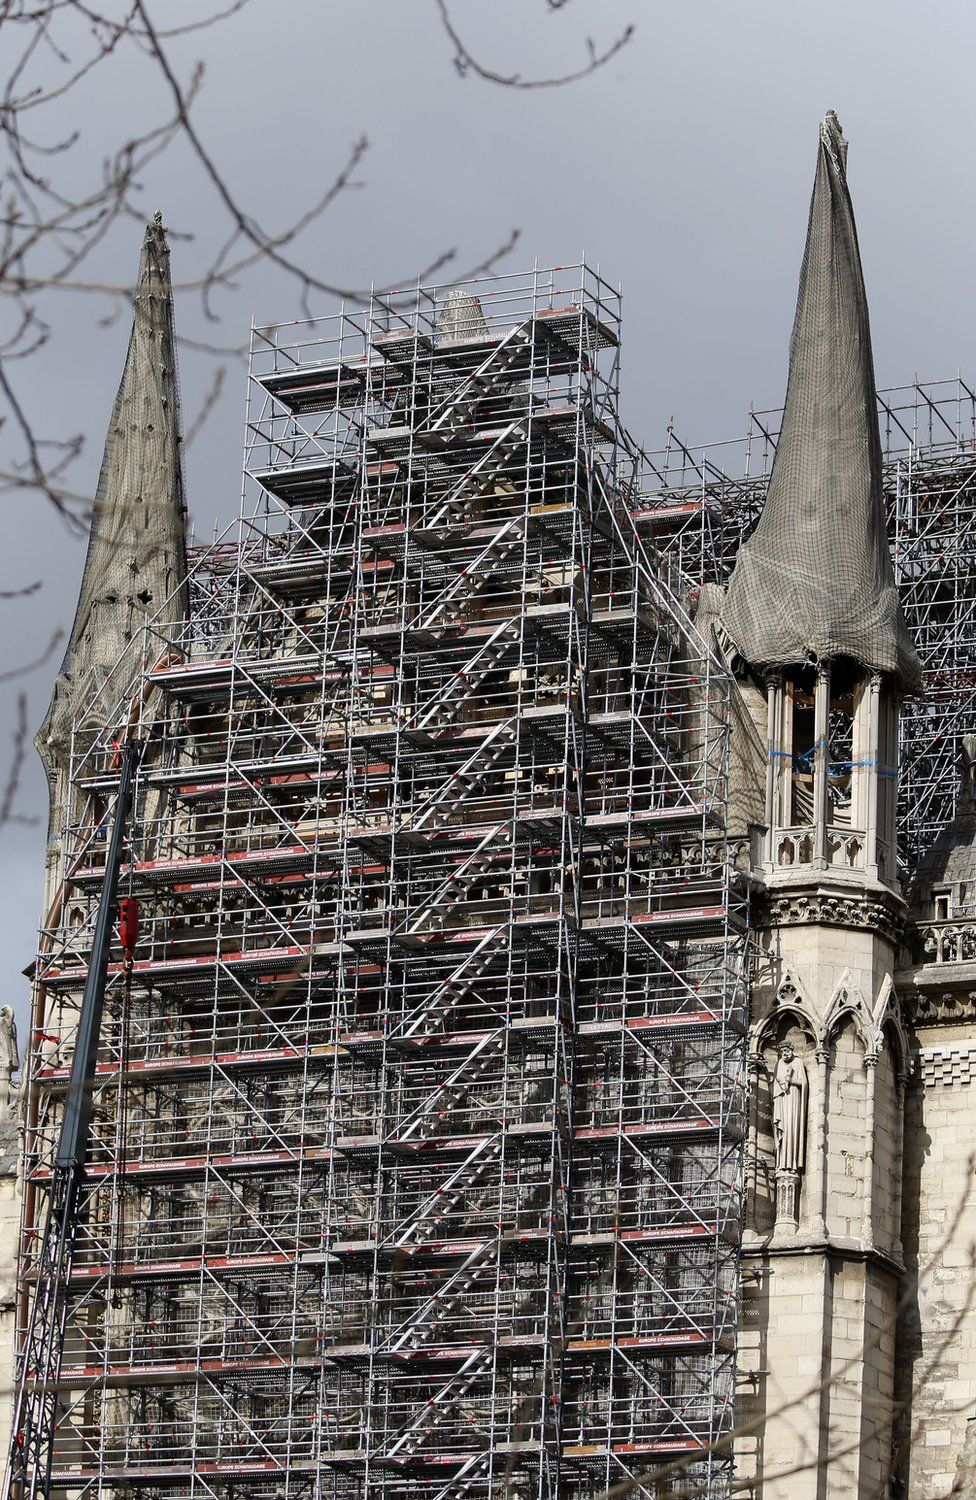 Scaffolding seen on the Notre-Dame cathedral